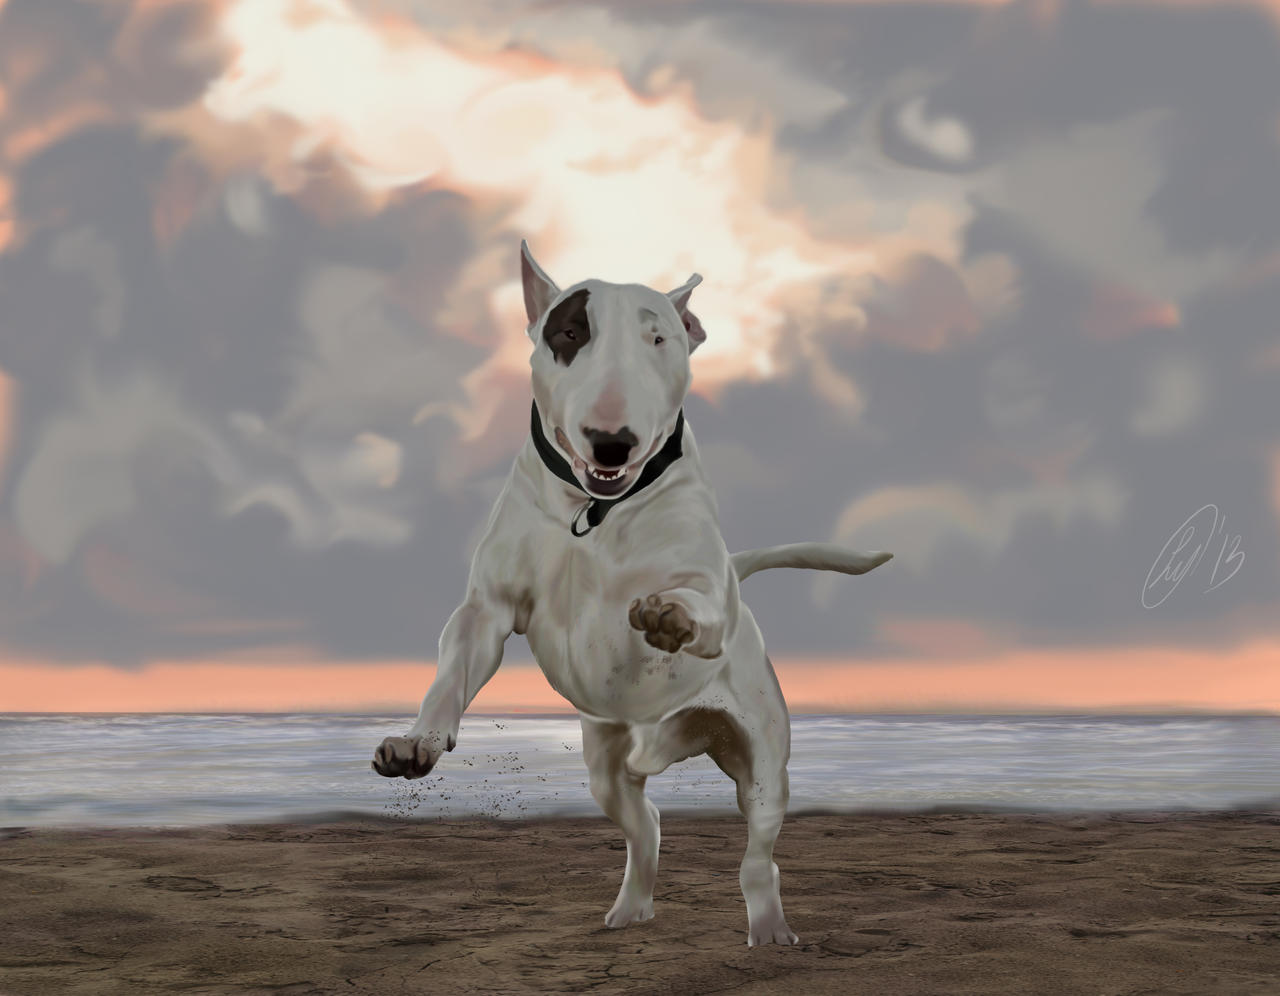 English Bull Terrier Painted By LuckyJellyfish On DeviantArt - Bull terrier art